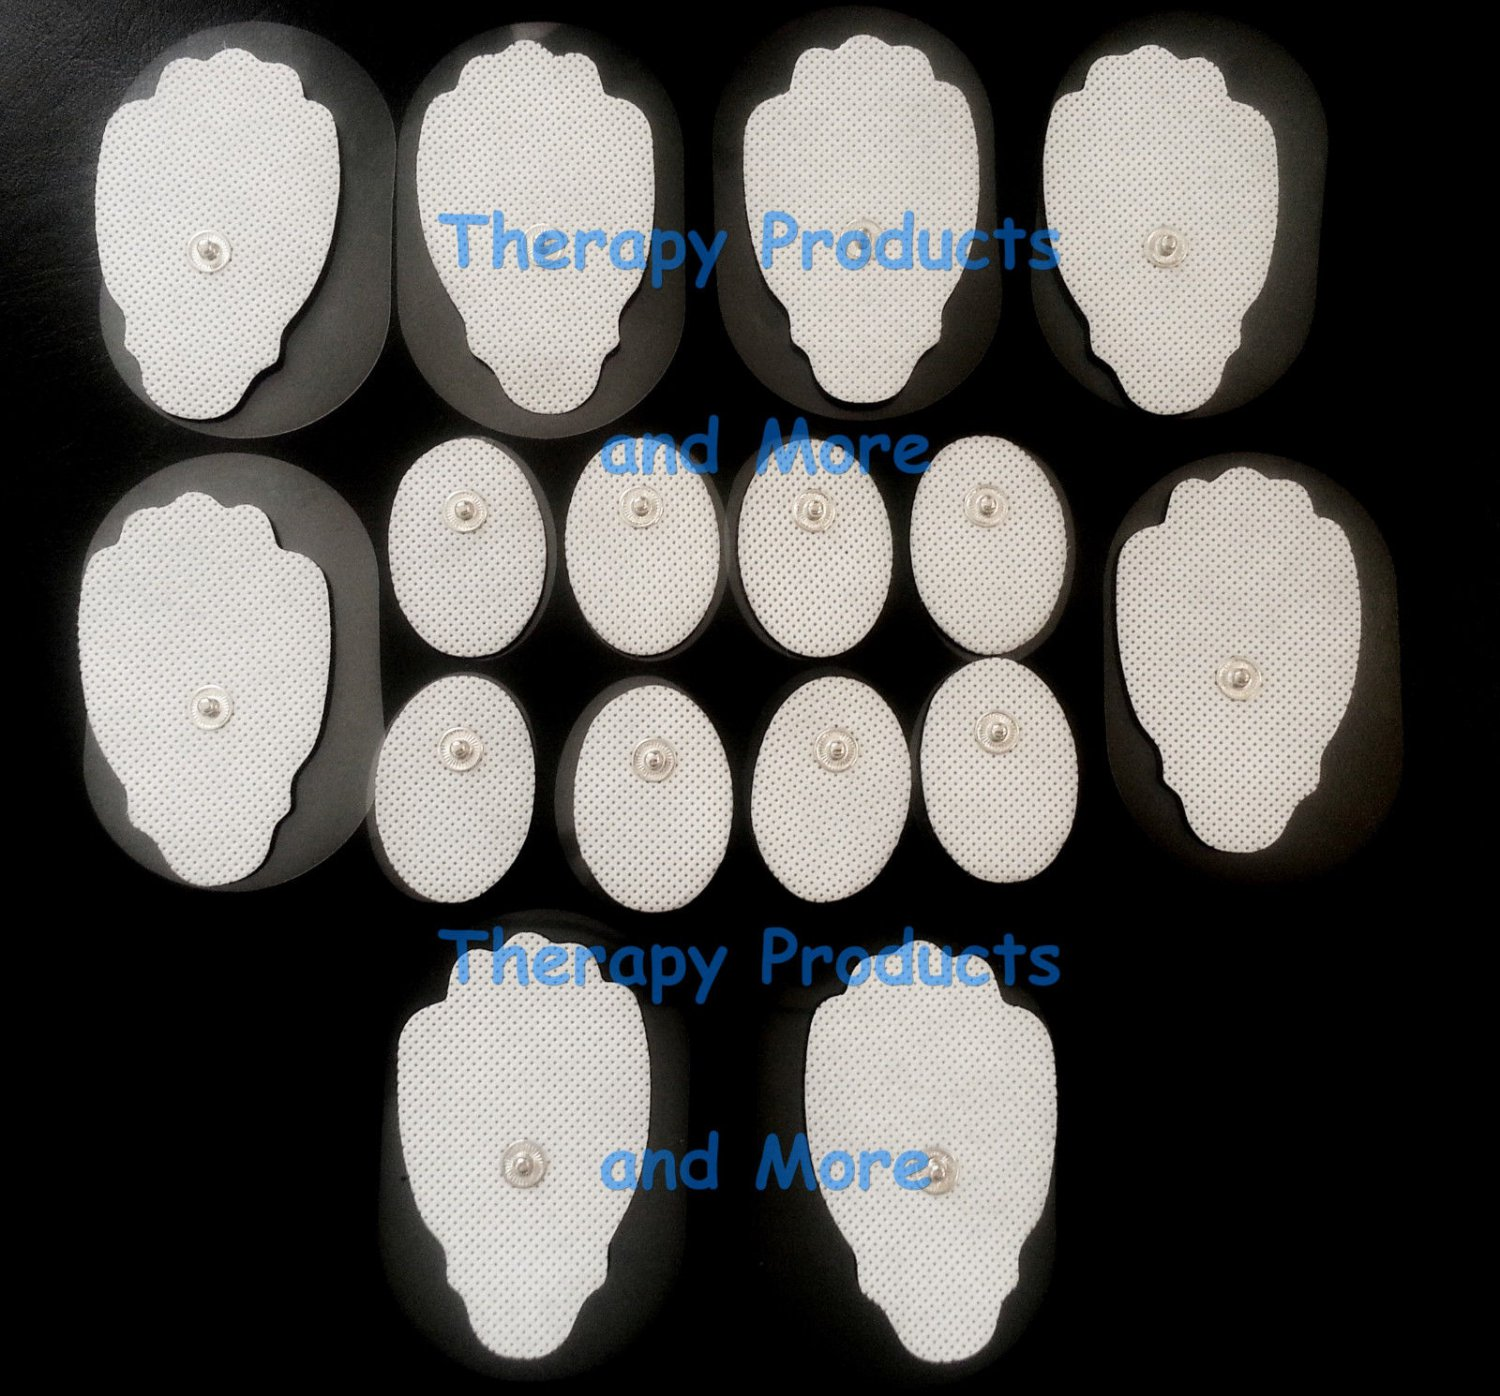 REPLACEMENT ELECTRODE PADS COMBO (8 LG, 8 SM OVAL) FOR AURAWAVE DIGITAL MASSAGER